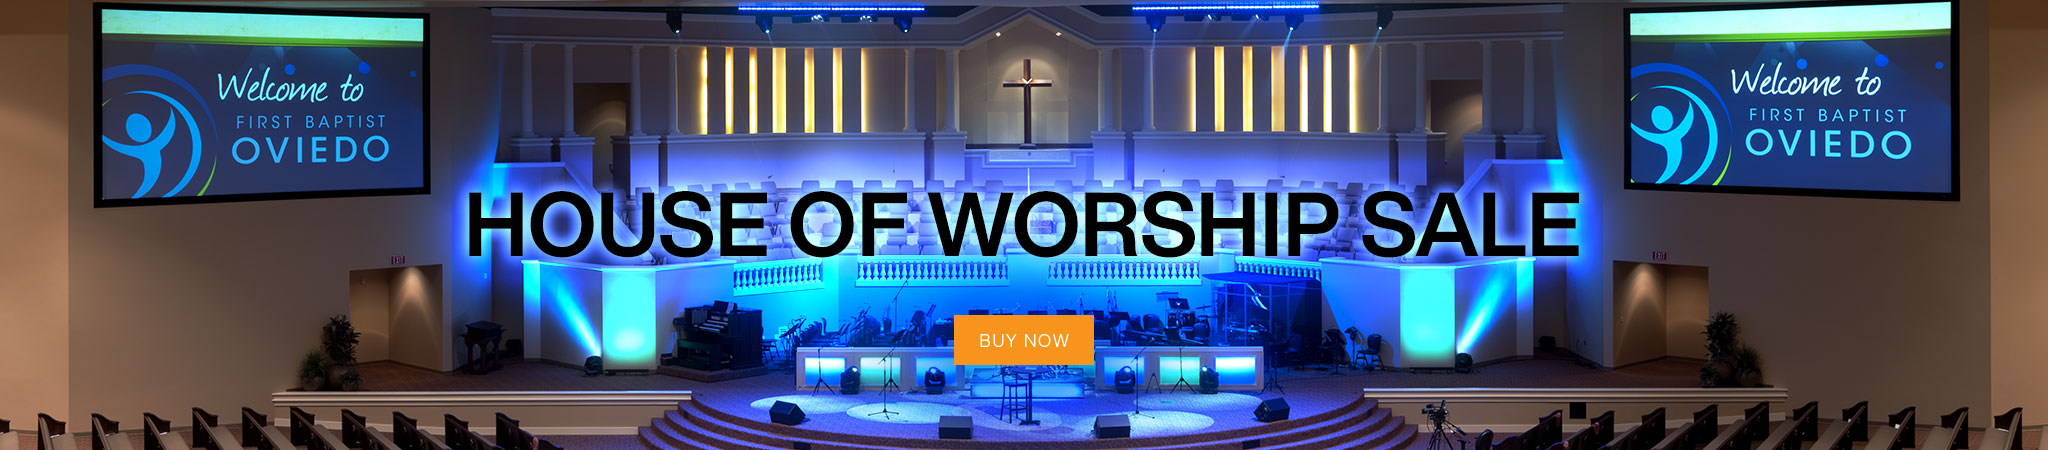 House of Worship Sale